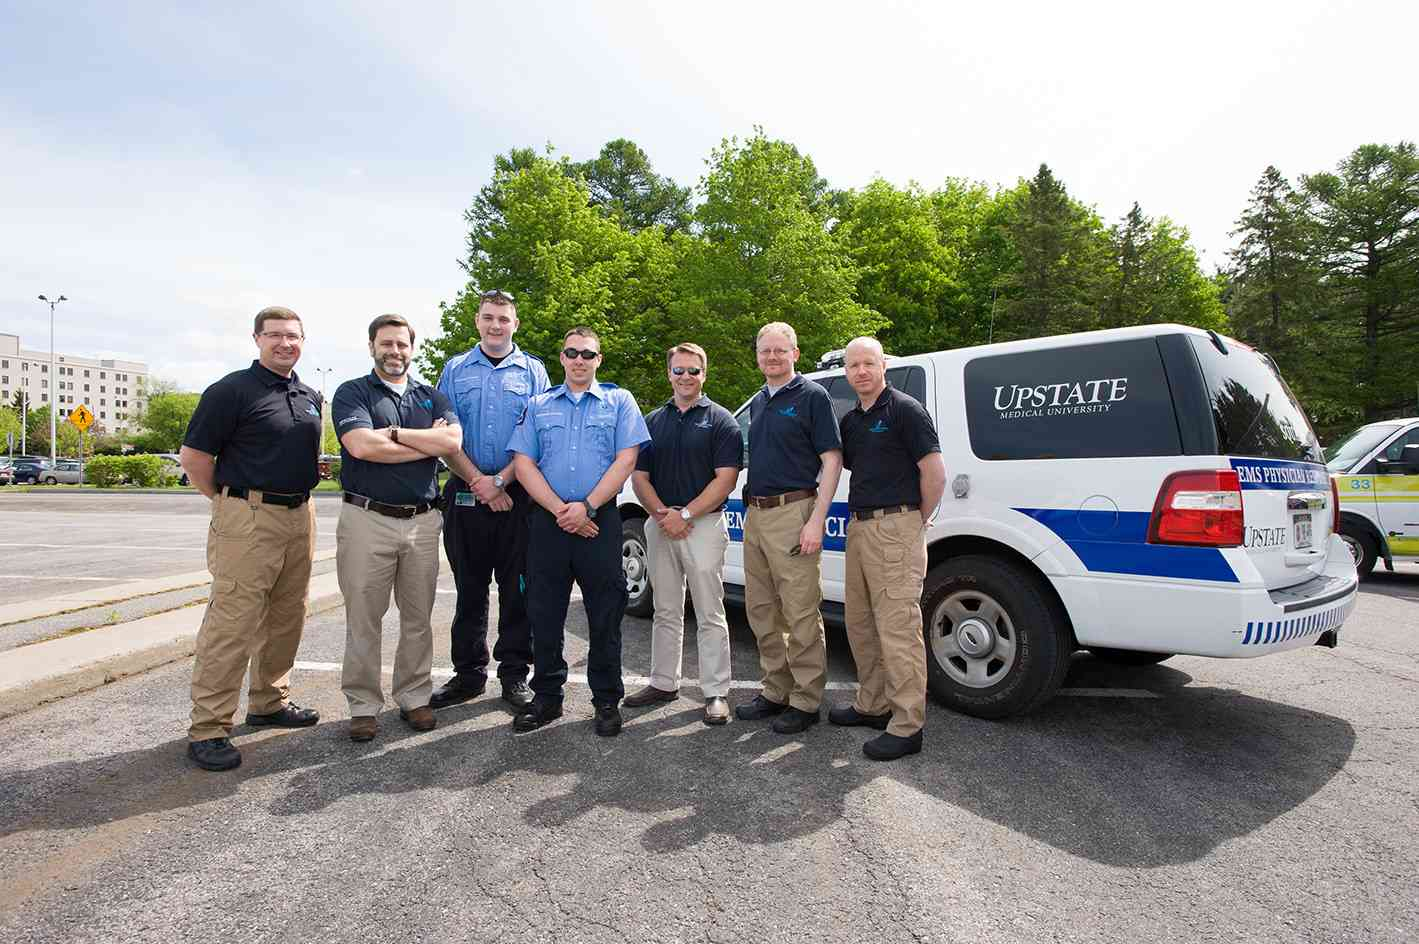 paramedic programs in syracuse ny - photo#1